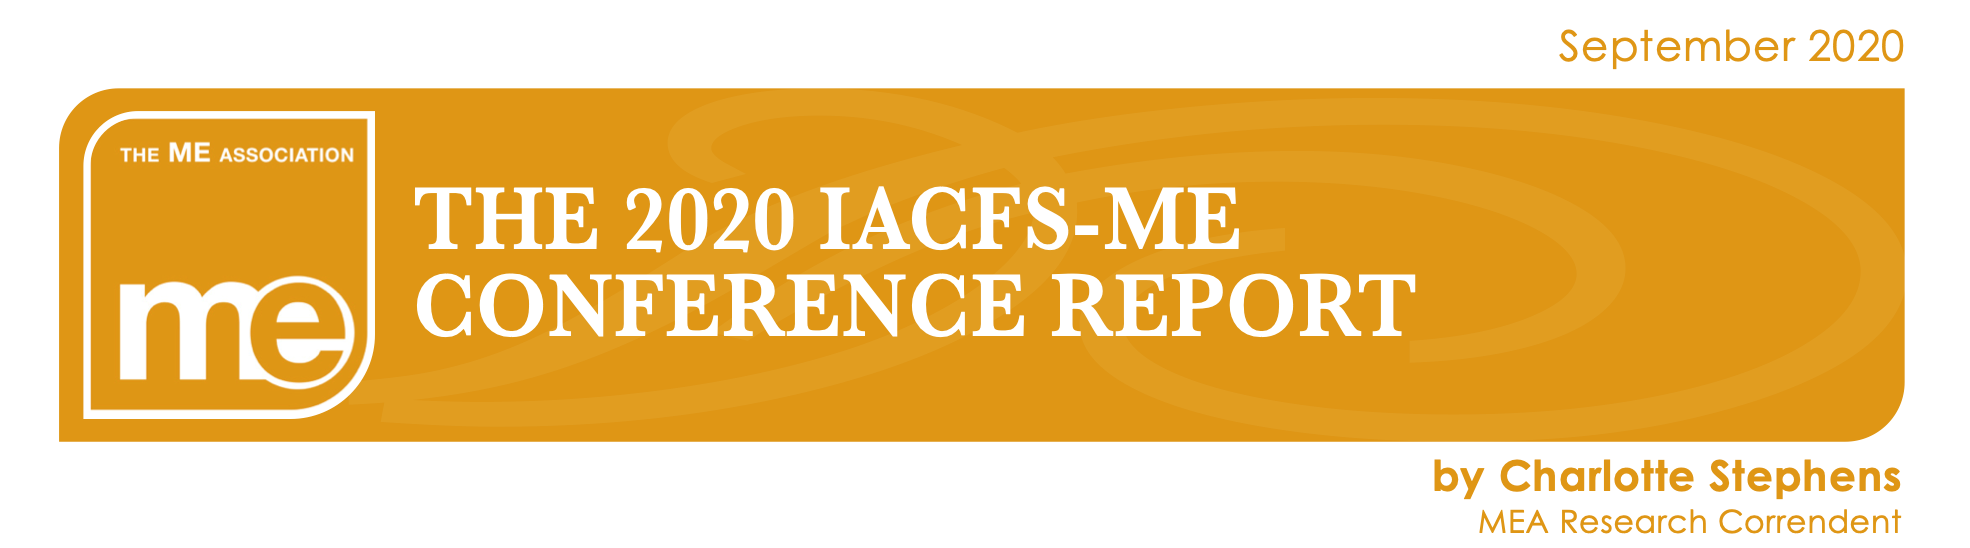 iacfs-conference-report-2020.png